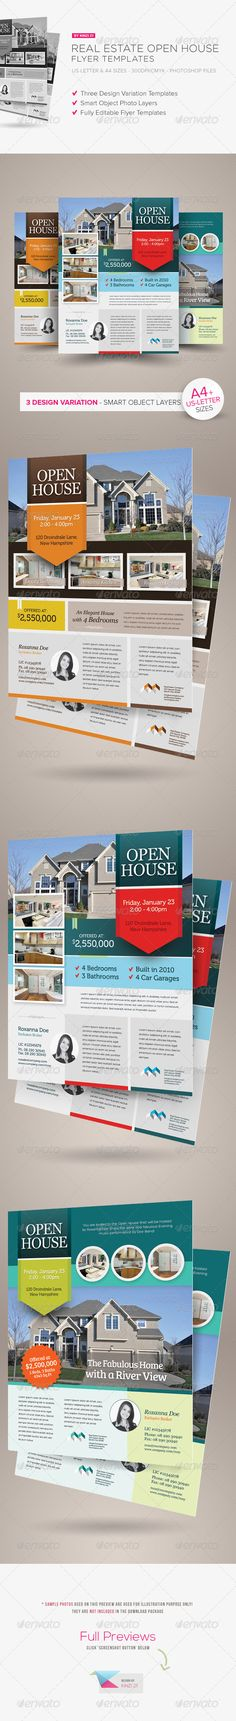 #Real #Estate Open House #Flyers - Corporate Flyers Download here: https://graphicriver.net/item/real-estate-open-house-flyers/6084072?ref=alena994